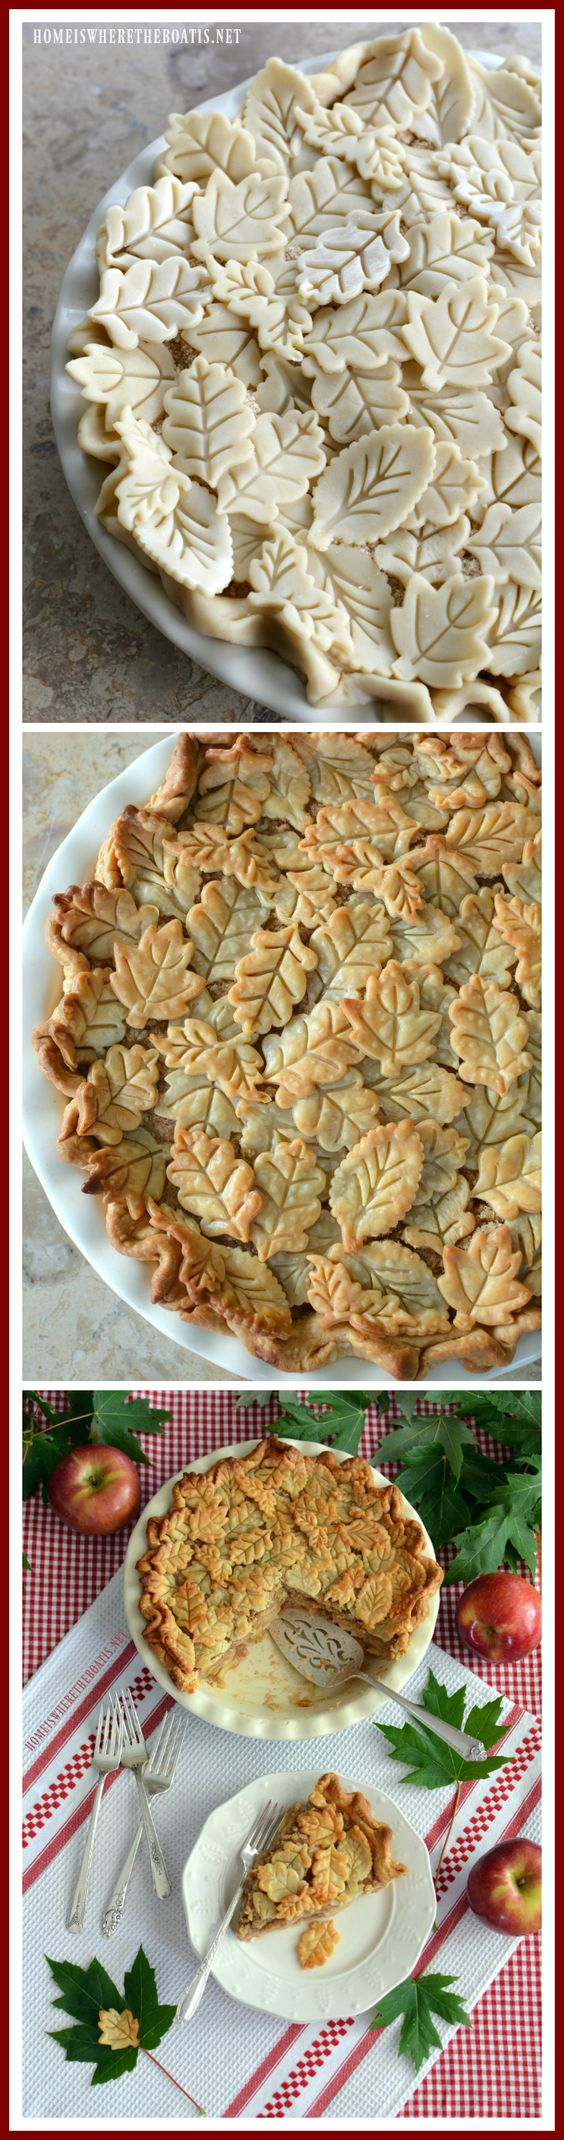 Apple Pie with pie crust leaf embellishments | ©homeiswheretheboatis.net #apple #pie #recipes